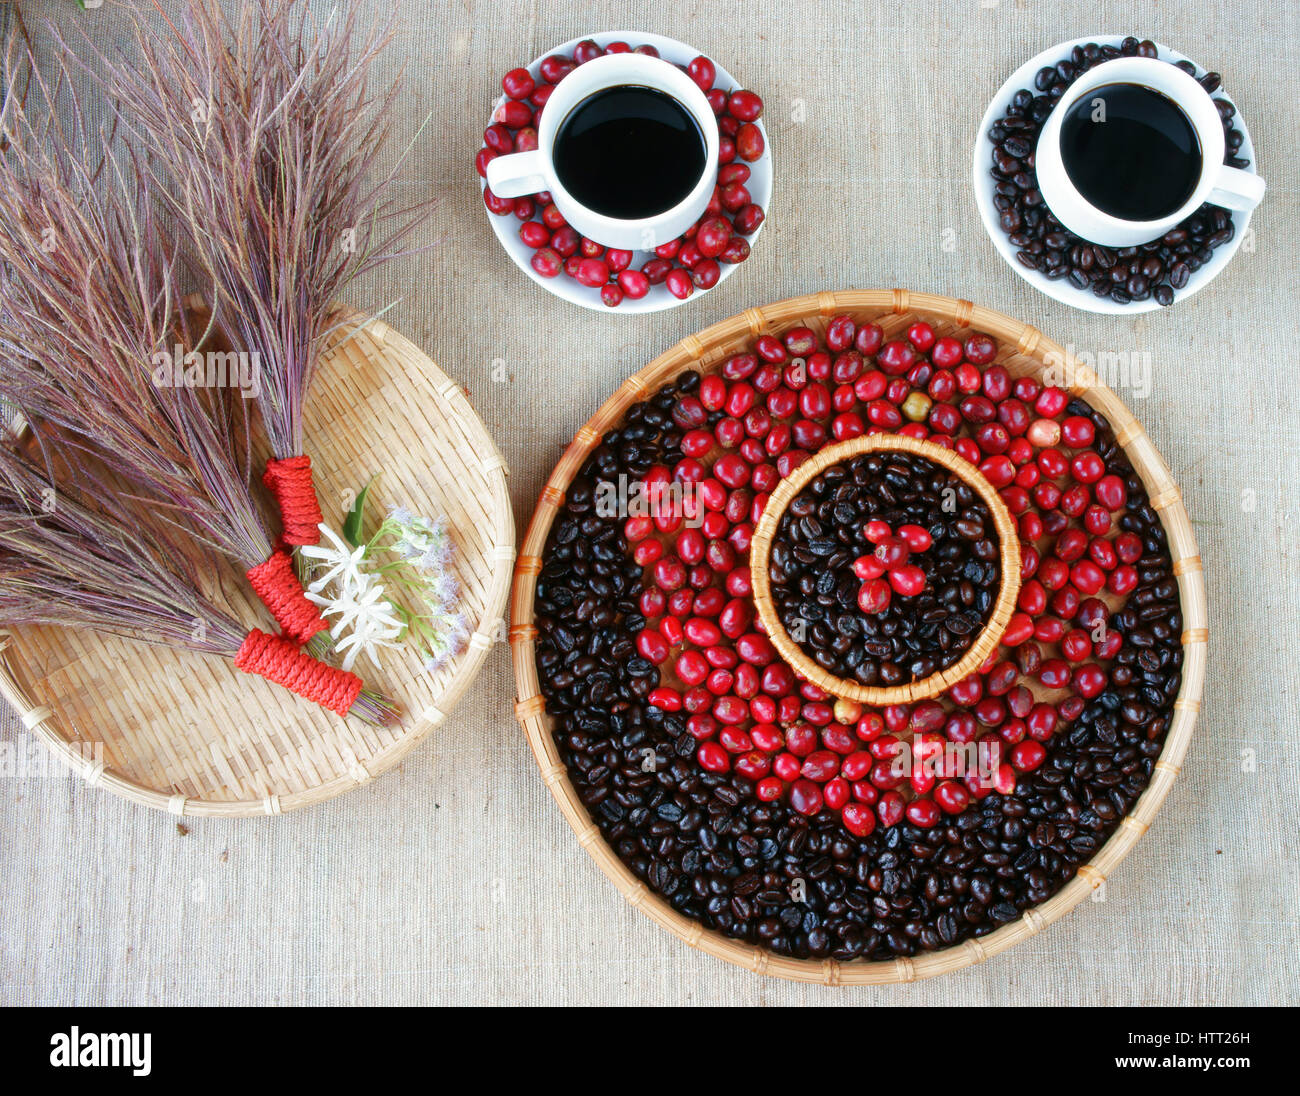 harmony creative for decor from coffee bean cup of black cafe ripe berries basket of roasted cafe bean white flower set up on sackcloth backgro - Black Cafe Decor